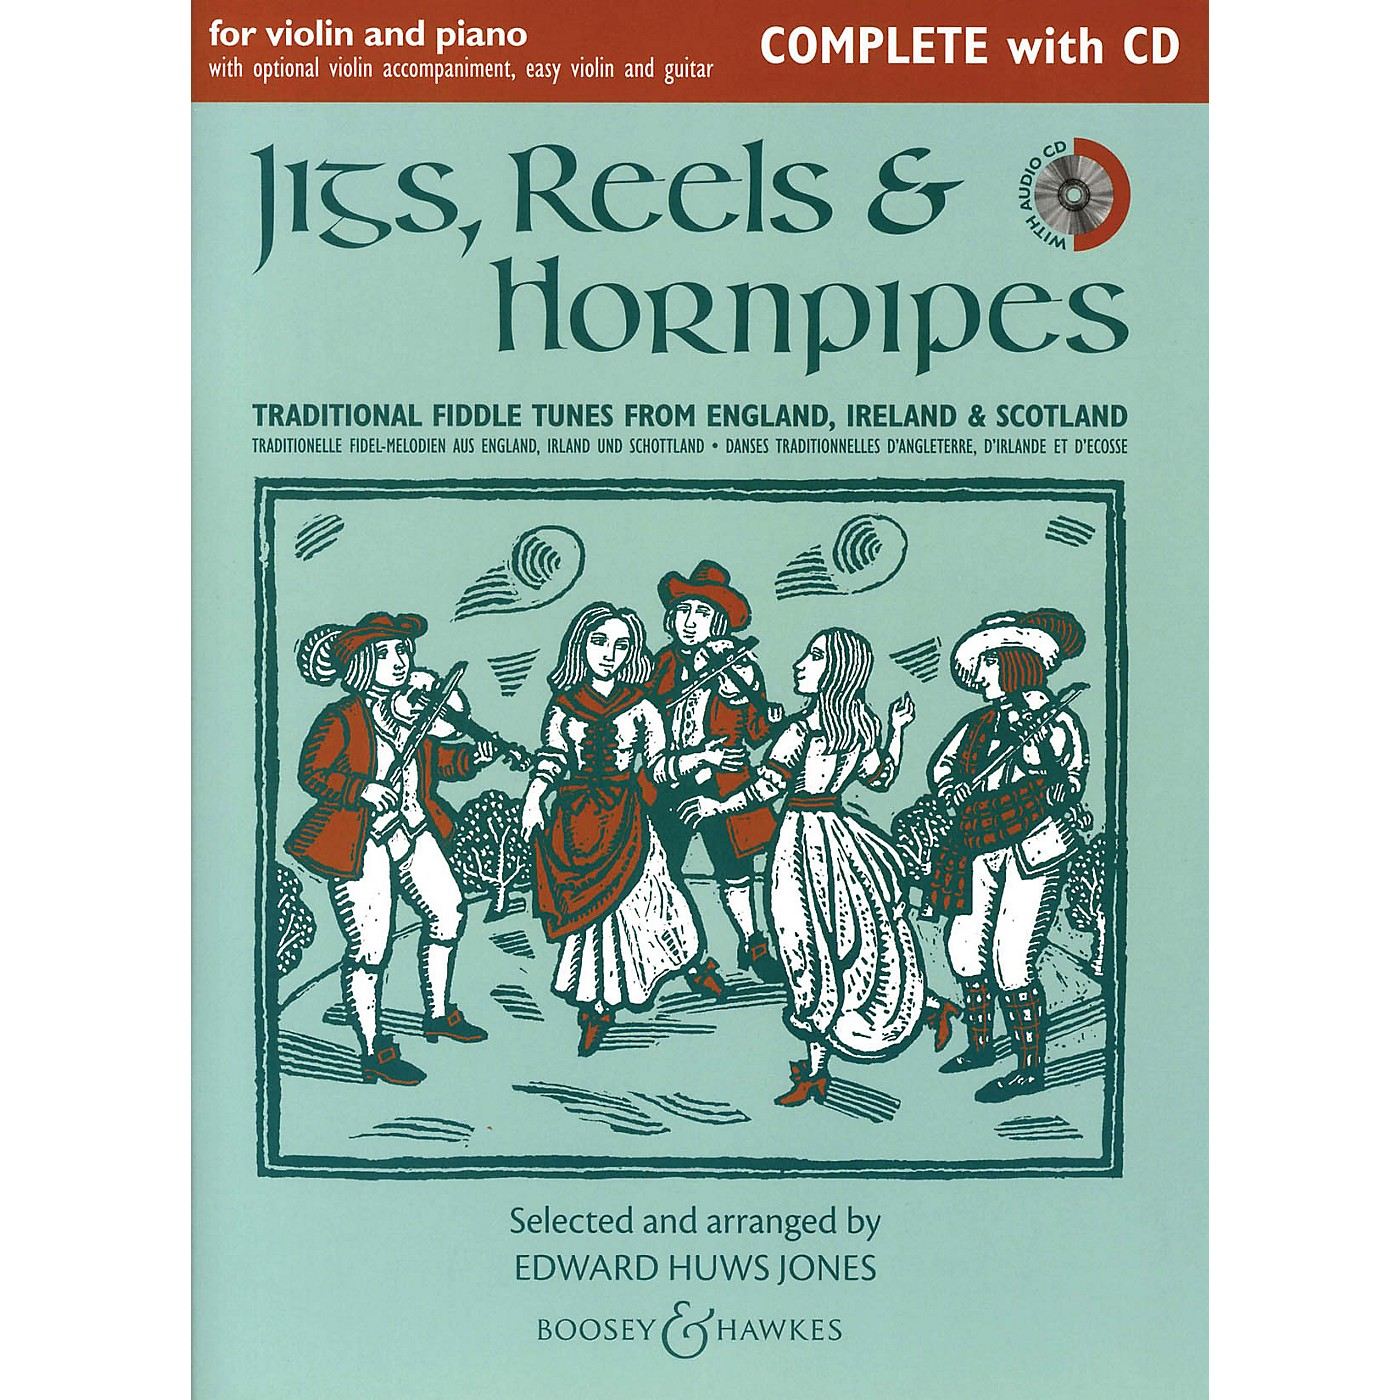 Boosey and Hawkes Jigs, Reels & Hornpipes (Complete Edition with CD) Boosey & Hawkes Chamber Music Series Softcover with CD thumbnail